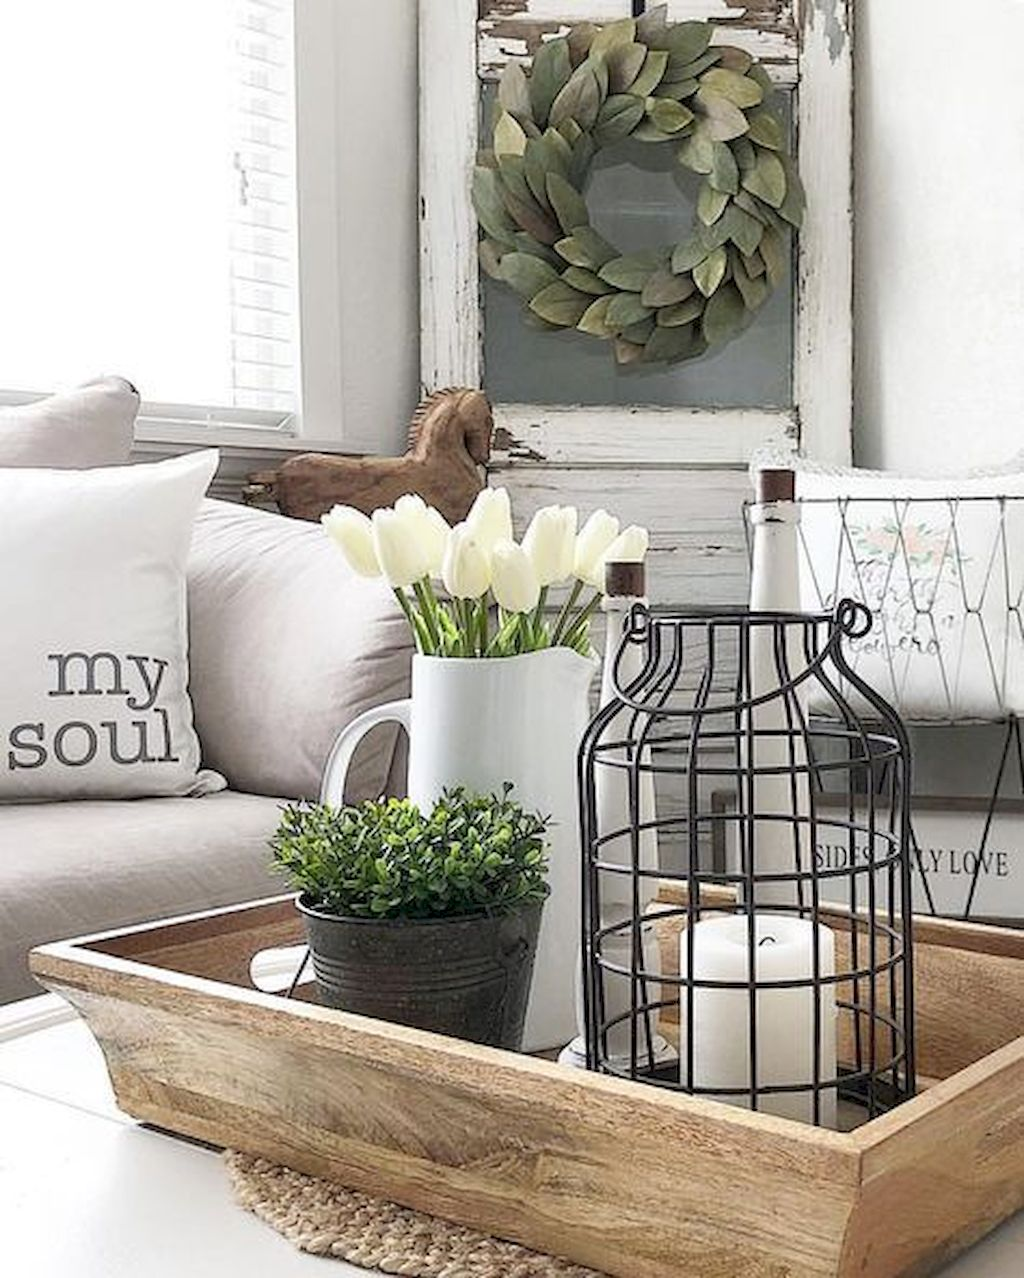 DIY Farmhouse Living Room Decor Part 7